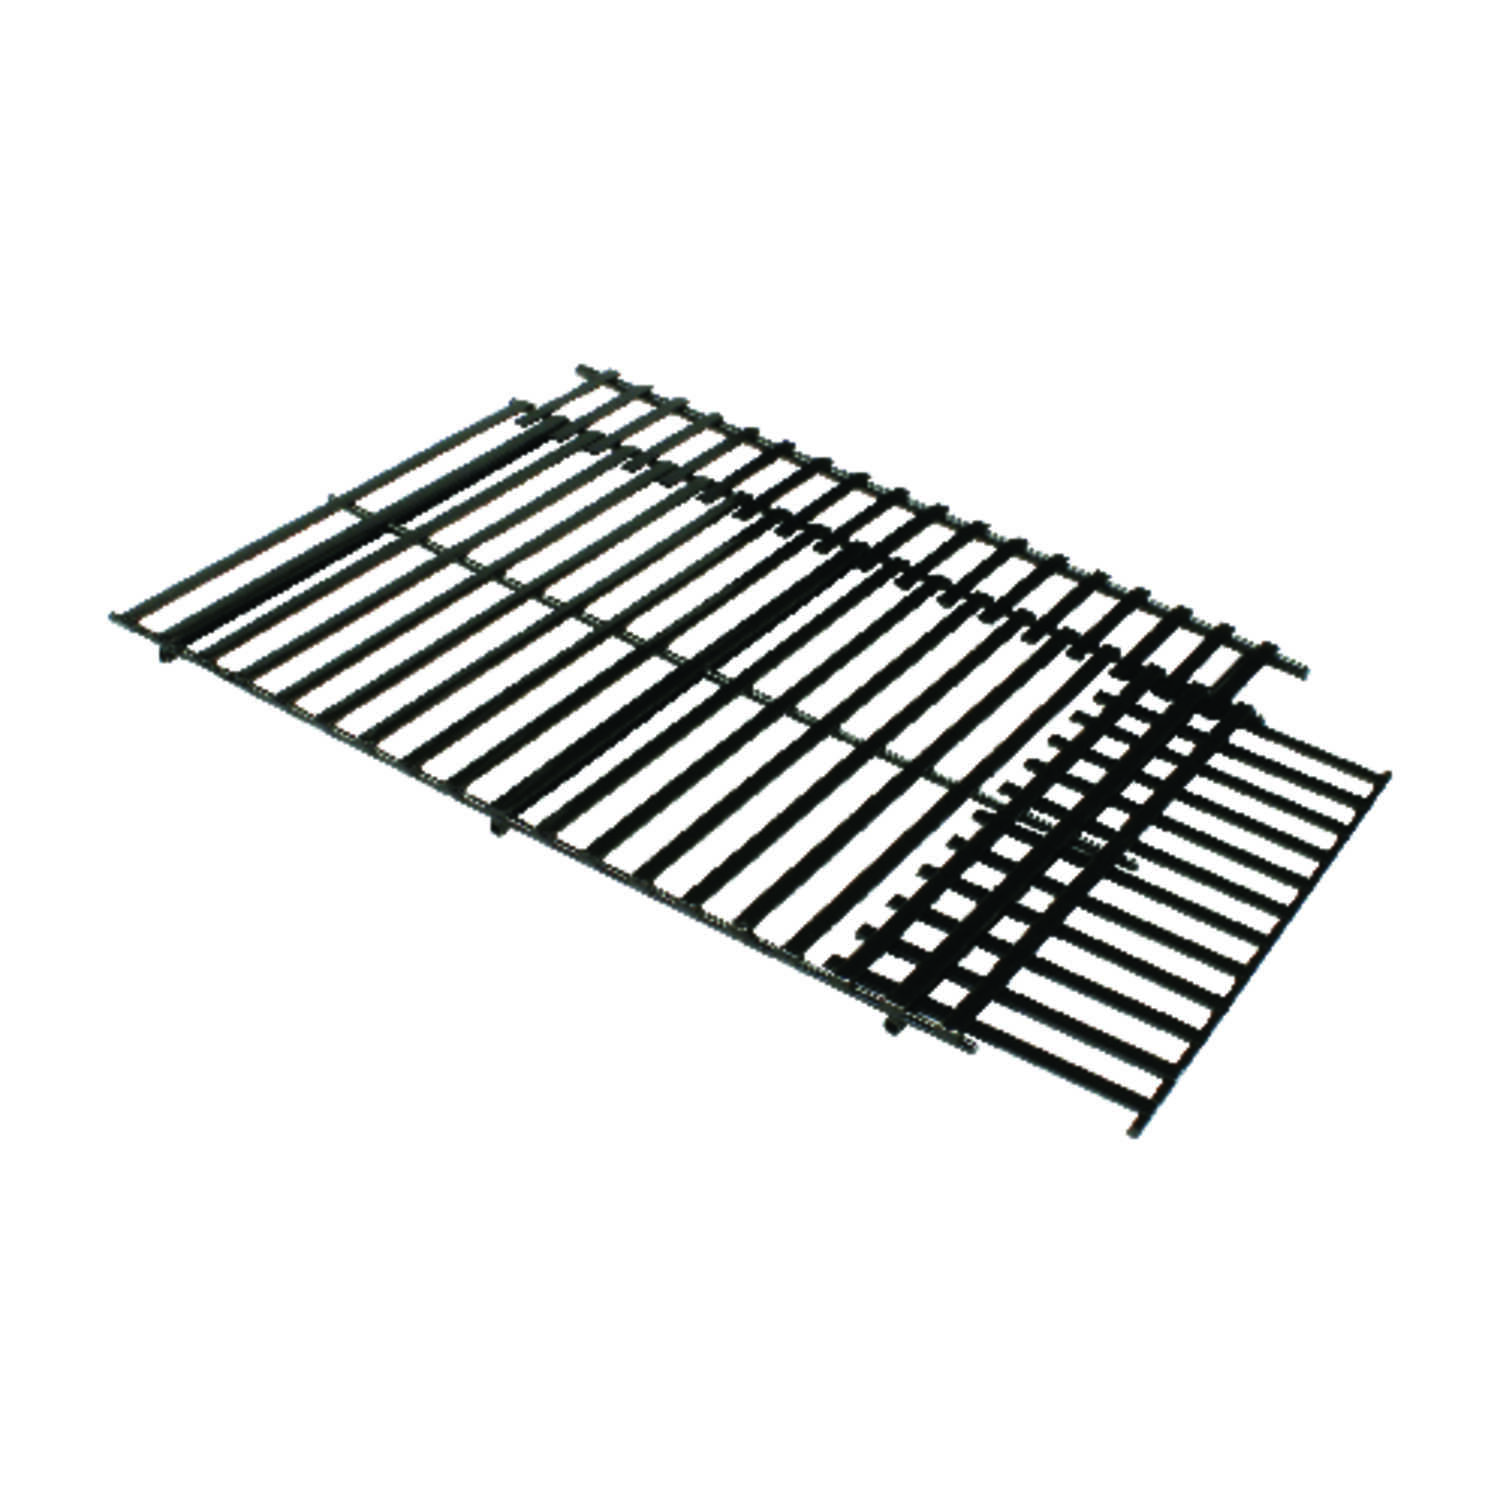 Grill Mark  Cast Iron/Porcelain  Grill Cooking Grate  0.8 in. H x 22 in. W x 14.3 in. L